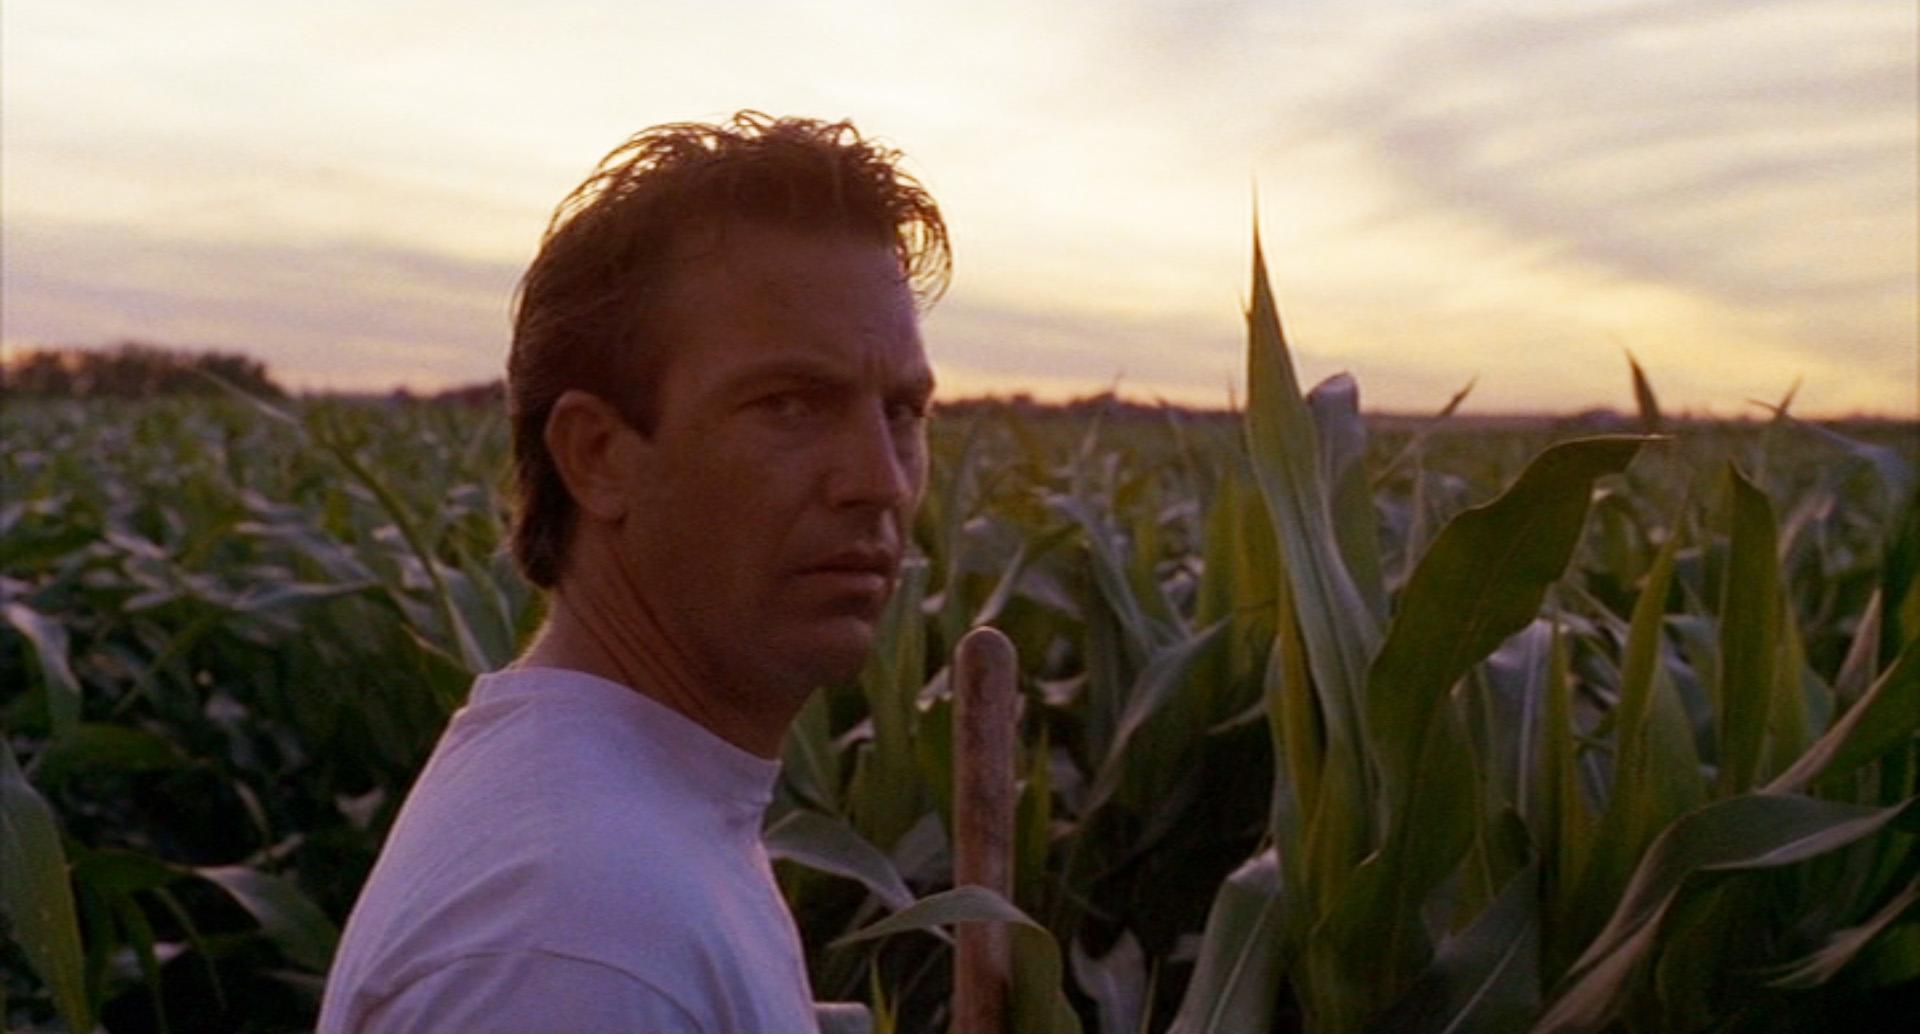 1920x1034 - Kevin Costner Wallpapers 12